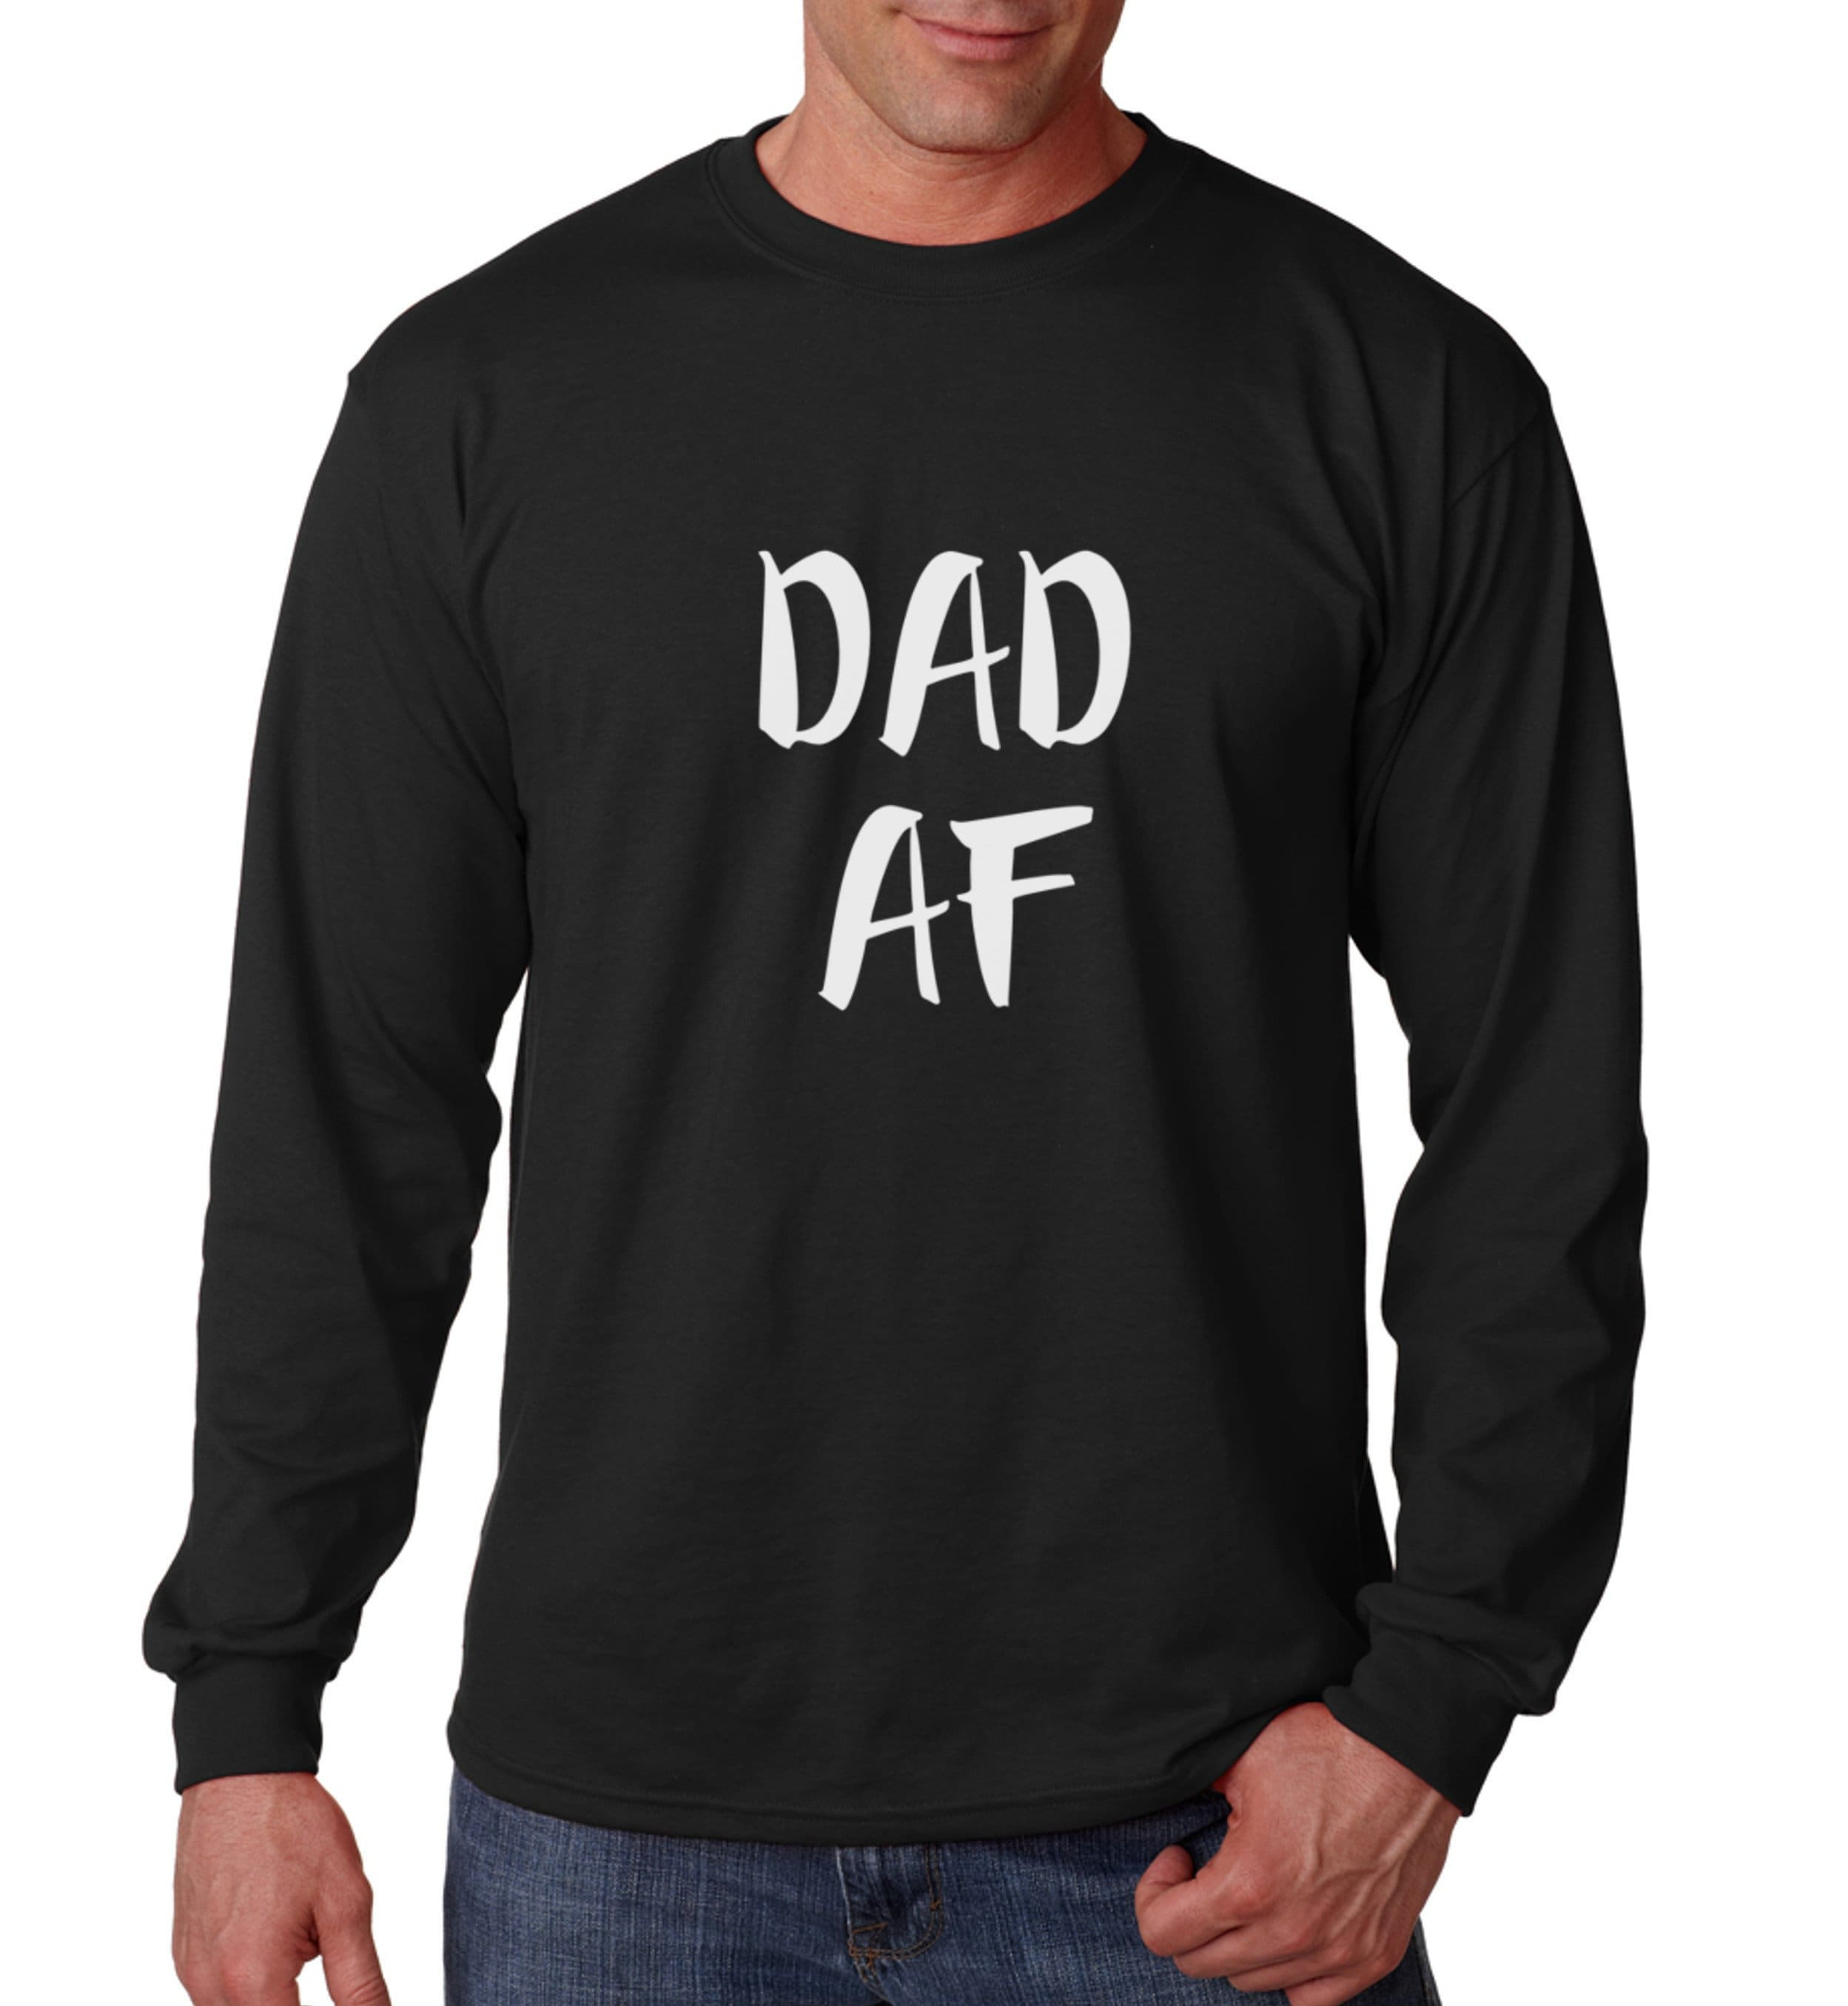 24a54f86 Long Sleeve - Dad AF Shirt, Super Dad, New Dad To Be T-Shirt ...